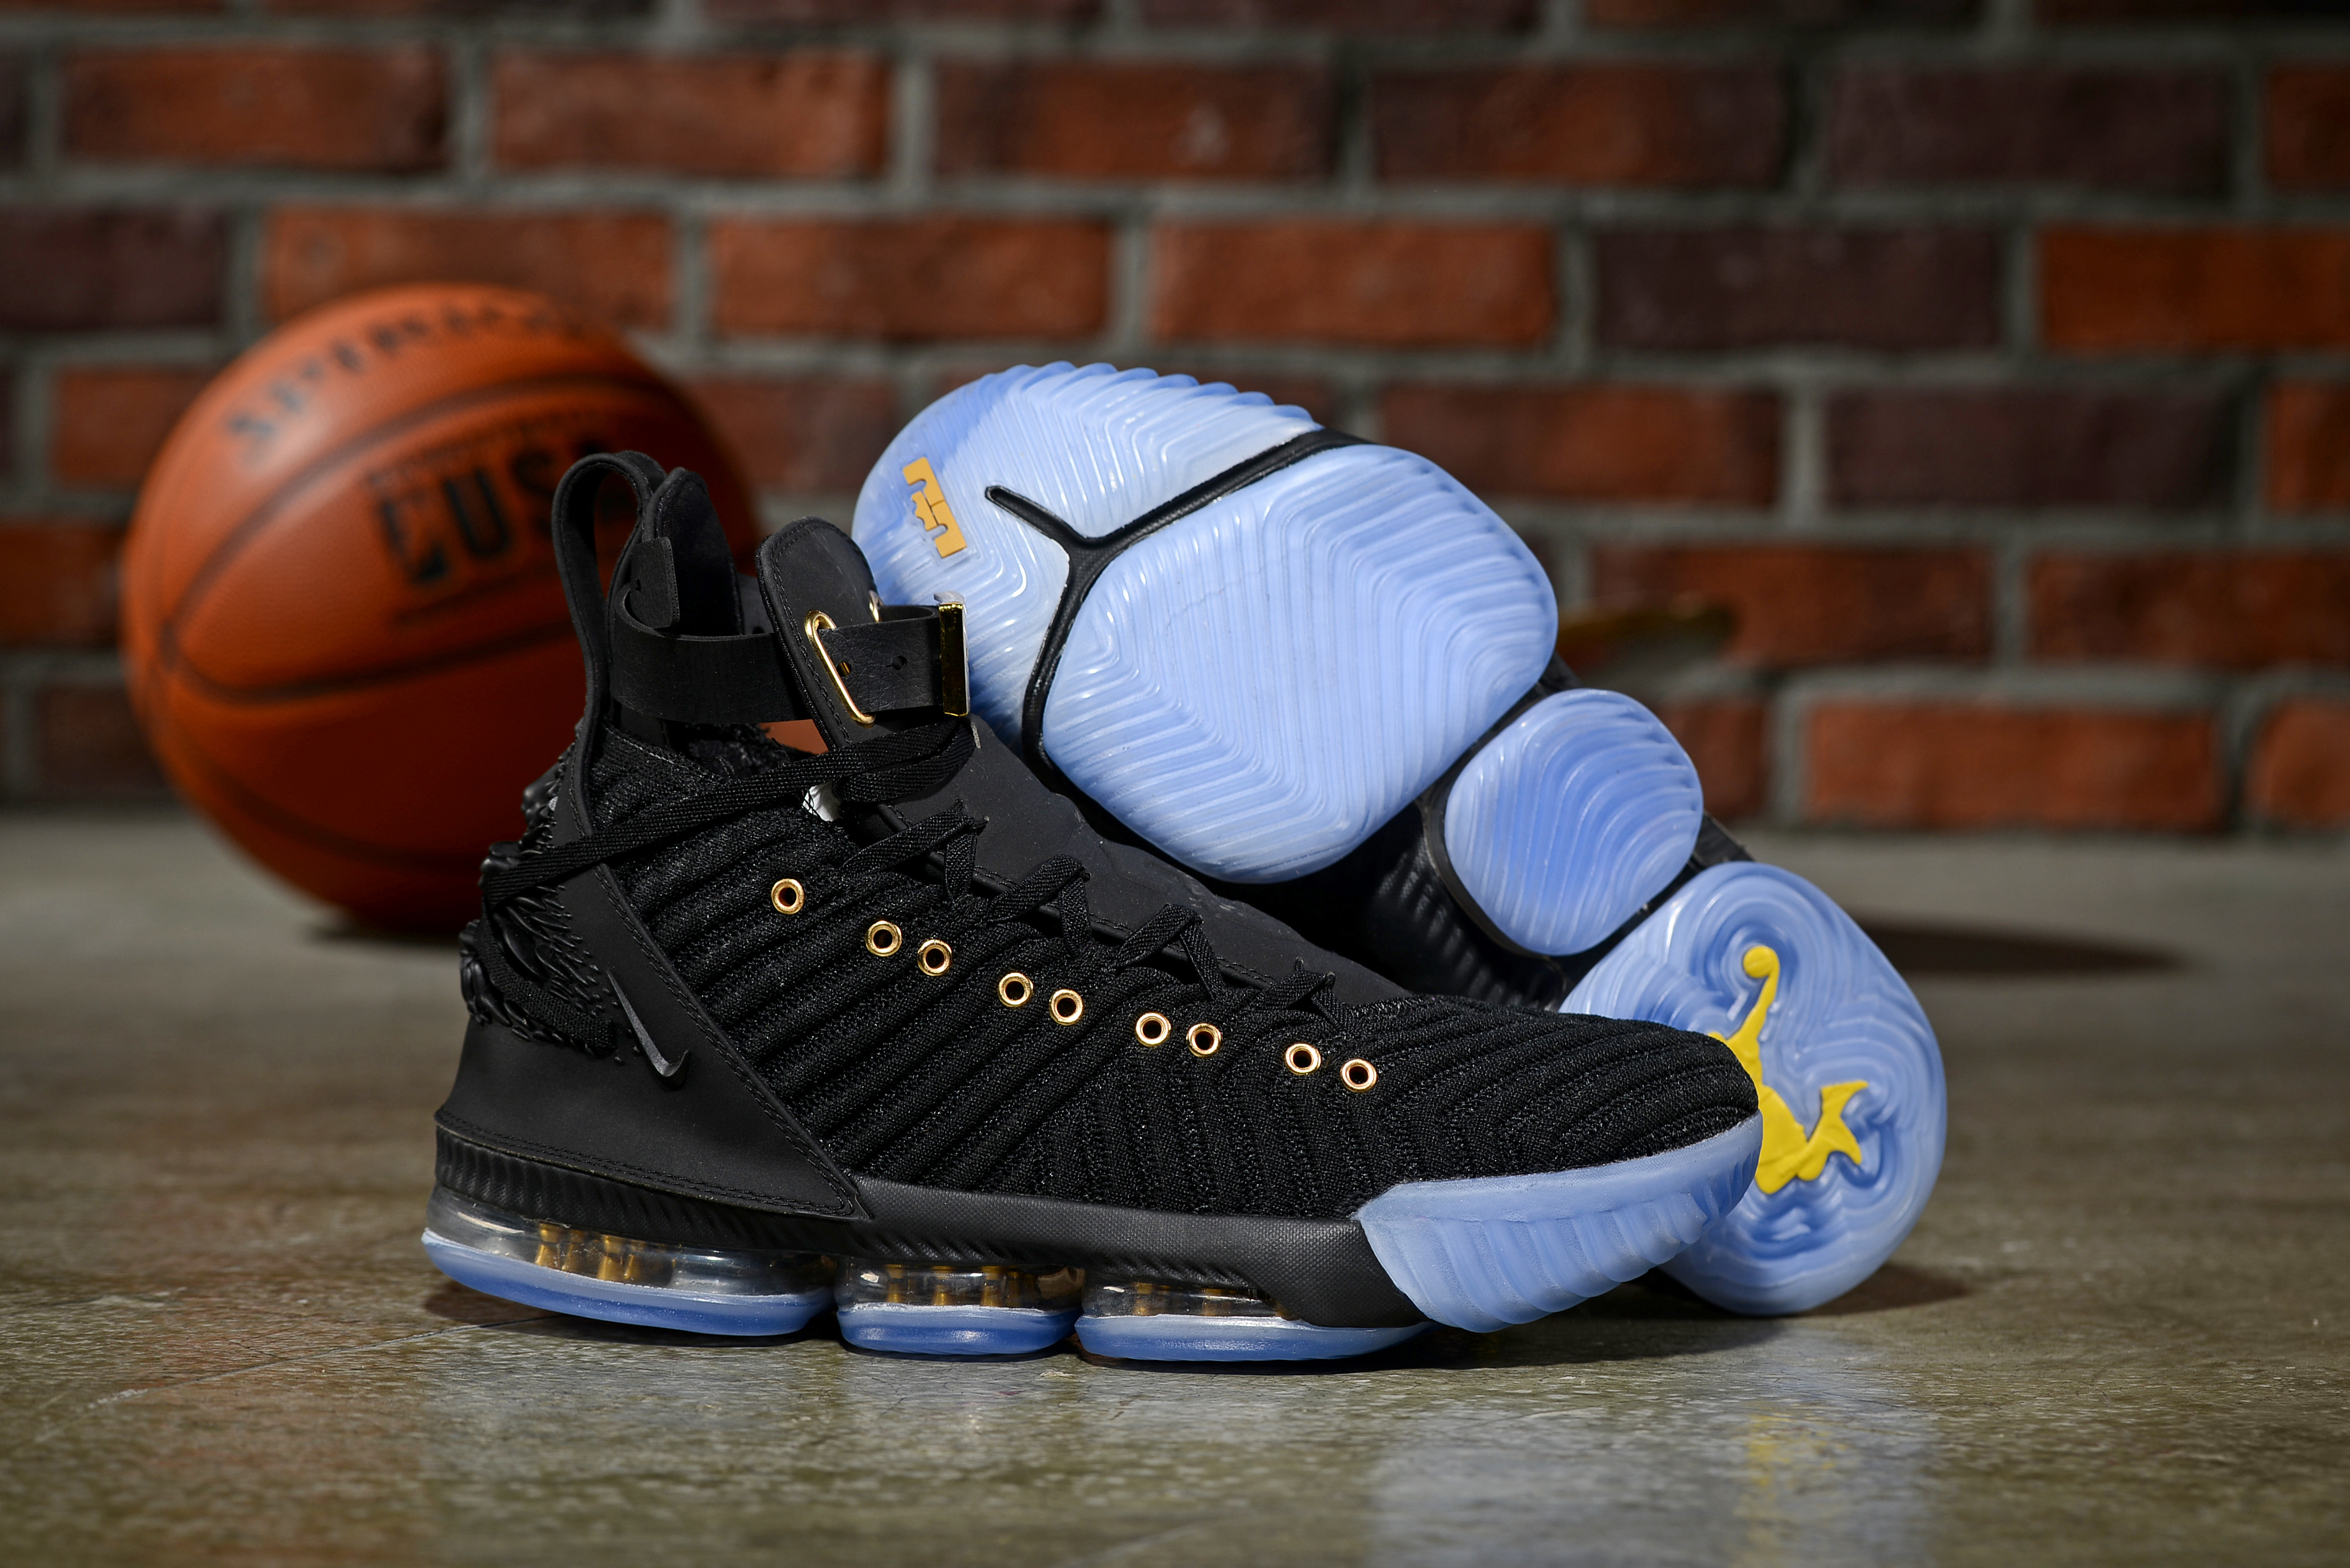 Nike LeBron 16 Emboss Black Gold Gamma Blue Shoes